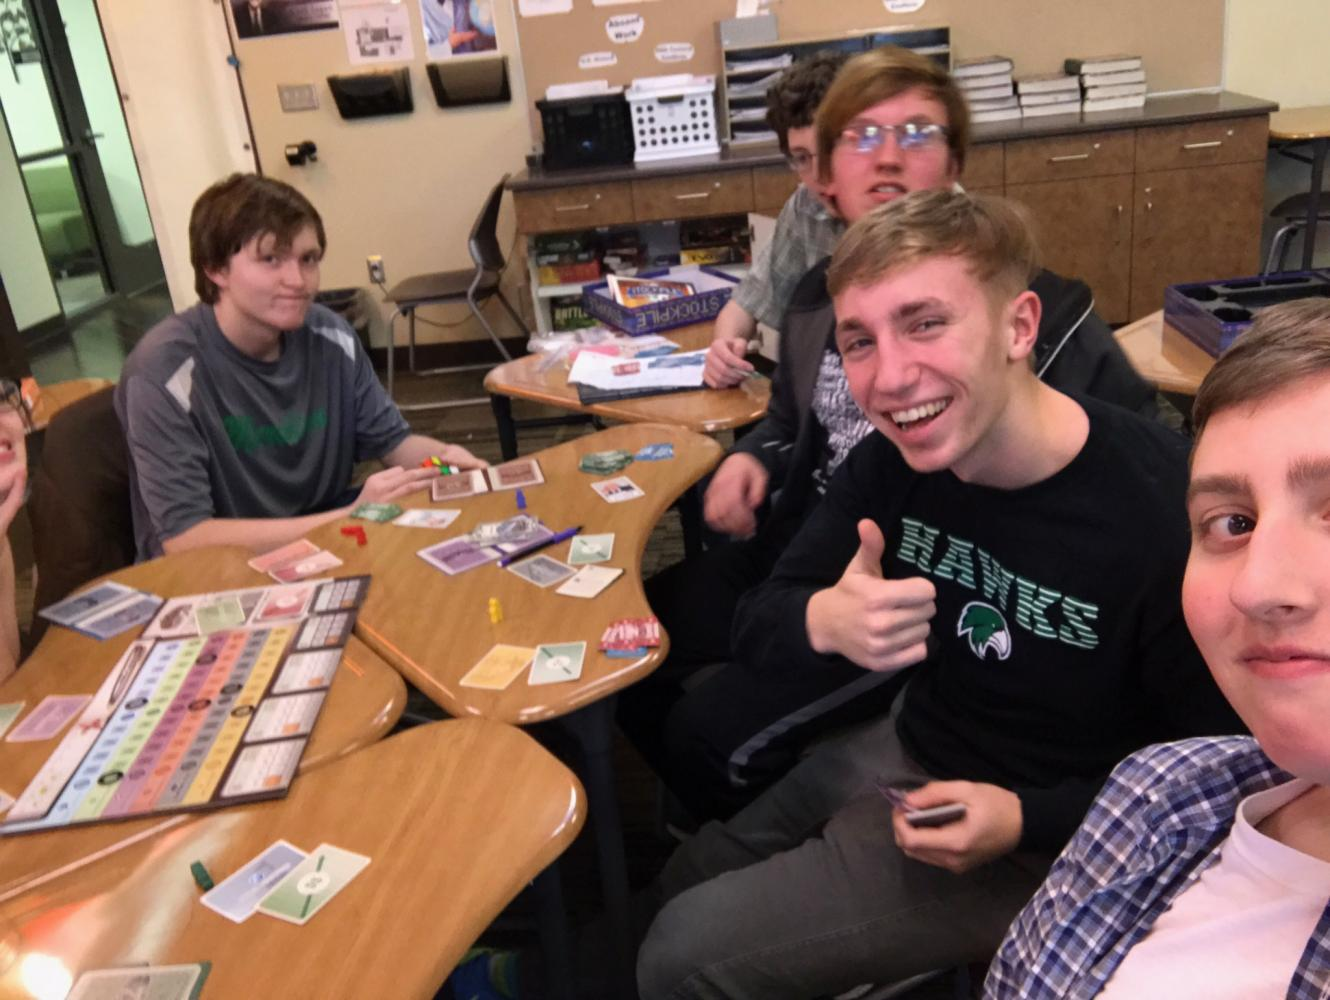 Yahtzee! Playing board games helps students have fun and make friends.